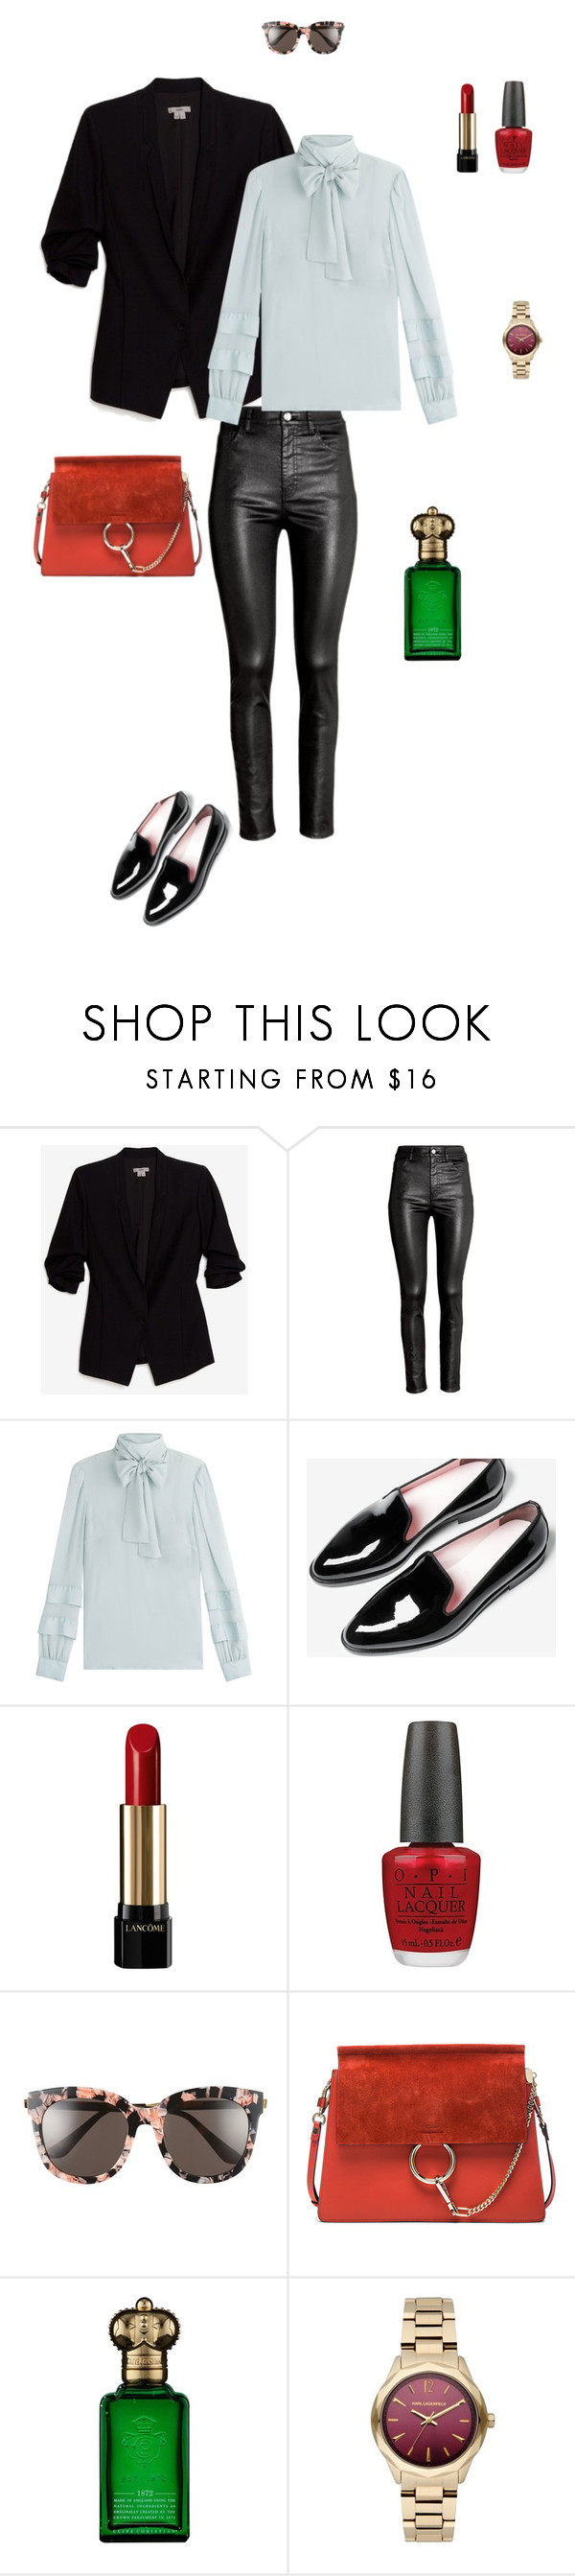 """silk blouse"" by ulusia-1 ❤ liked on Polyvore featuring Helmut by Helmut Lang, H&M, RED Valentino, Lancôme, OPI, Gentle Monster, Chloé, Clive Christian and Karl Lagerfeld"